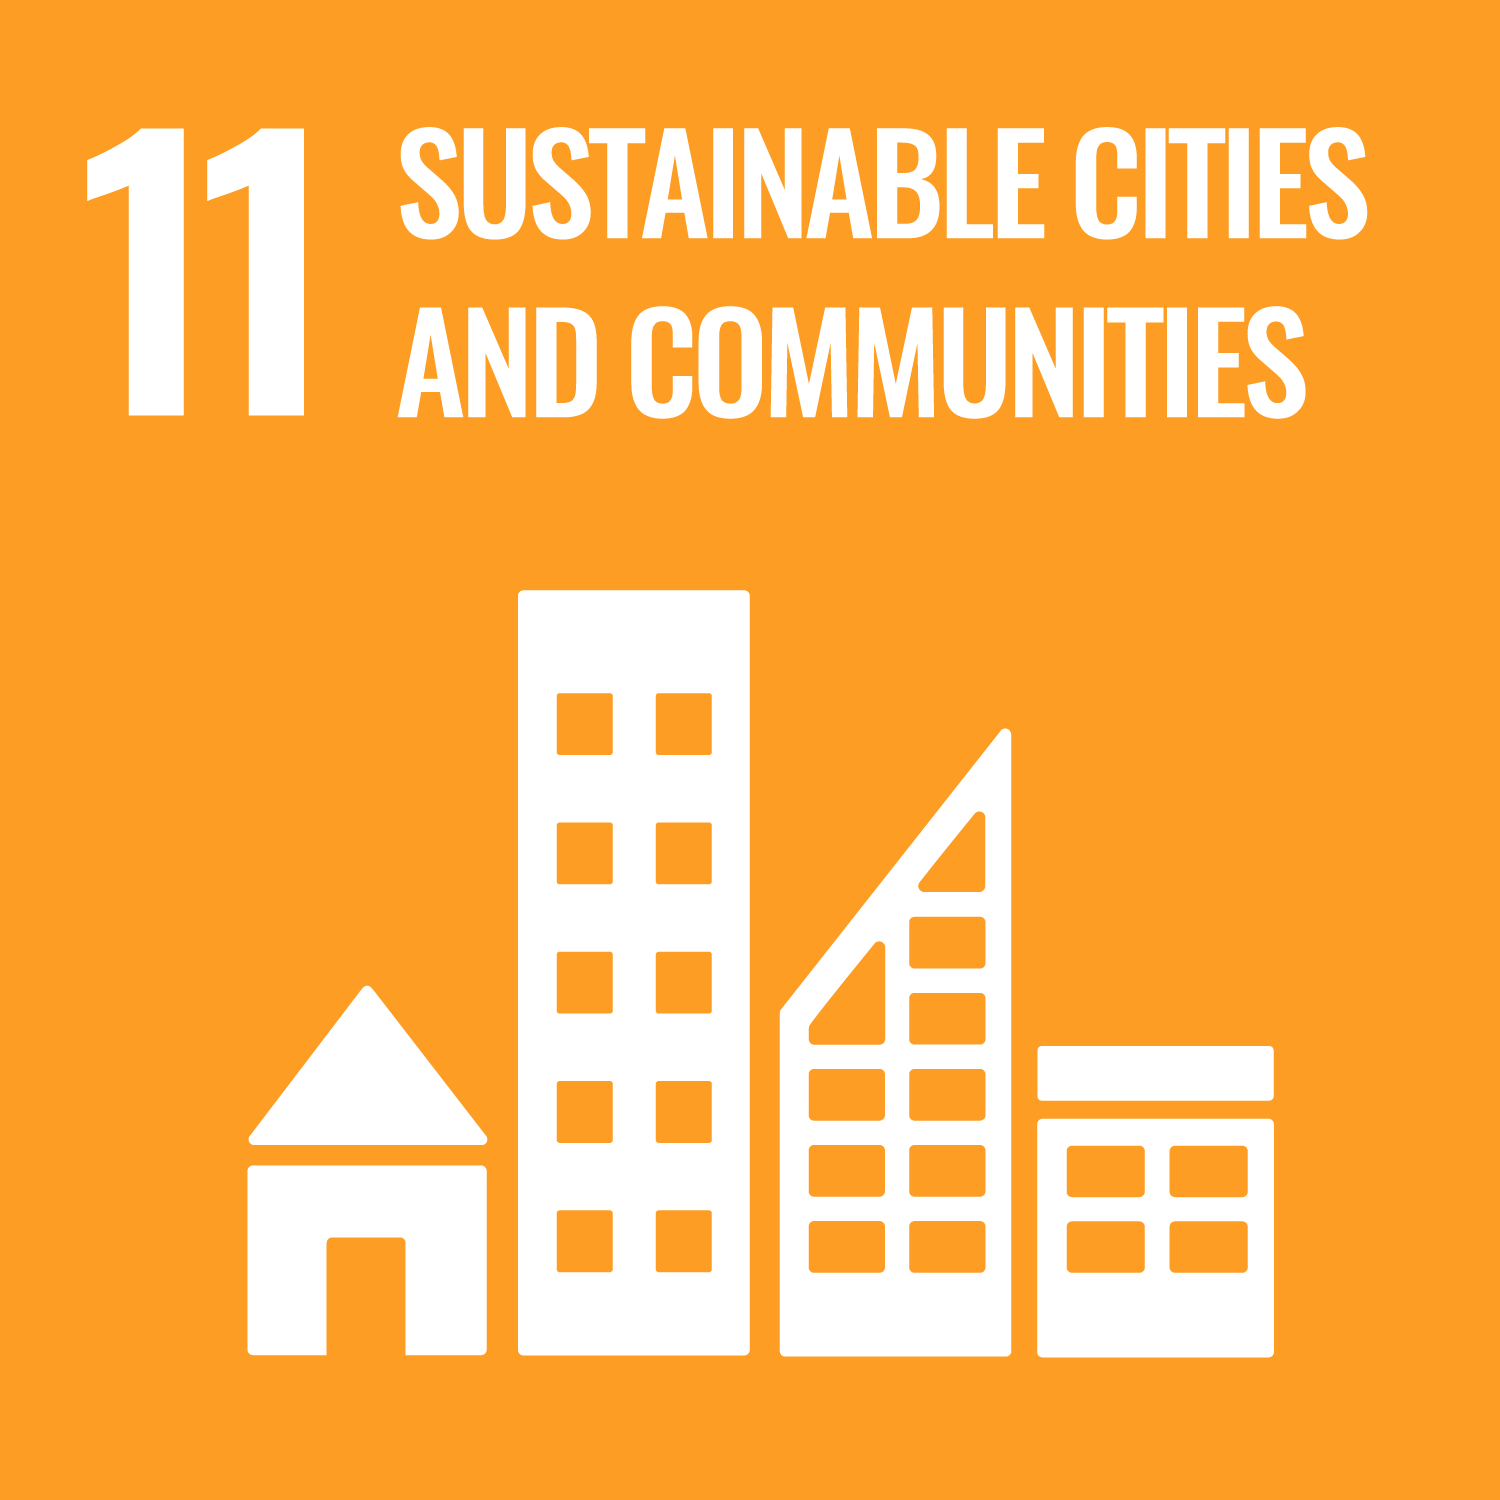 Sustainable Development Goal 11. Make cities inclusive, safe, resilient and sustainable.